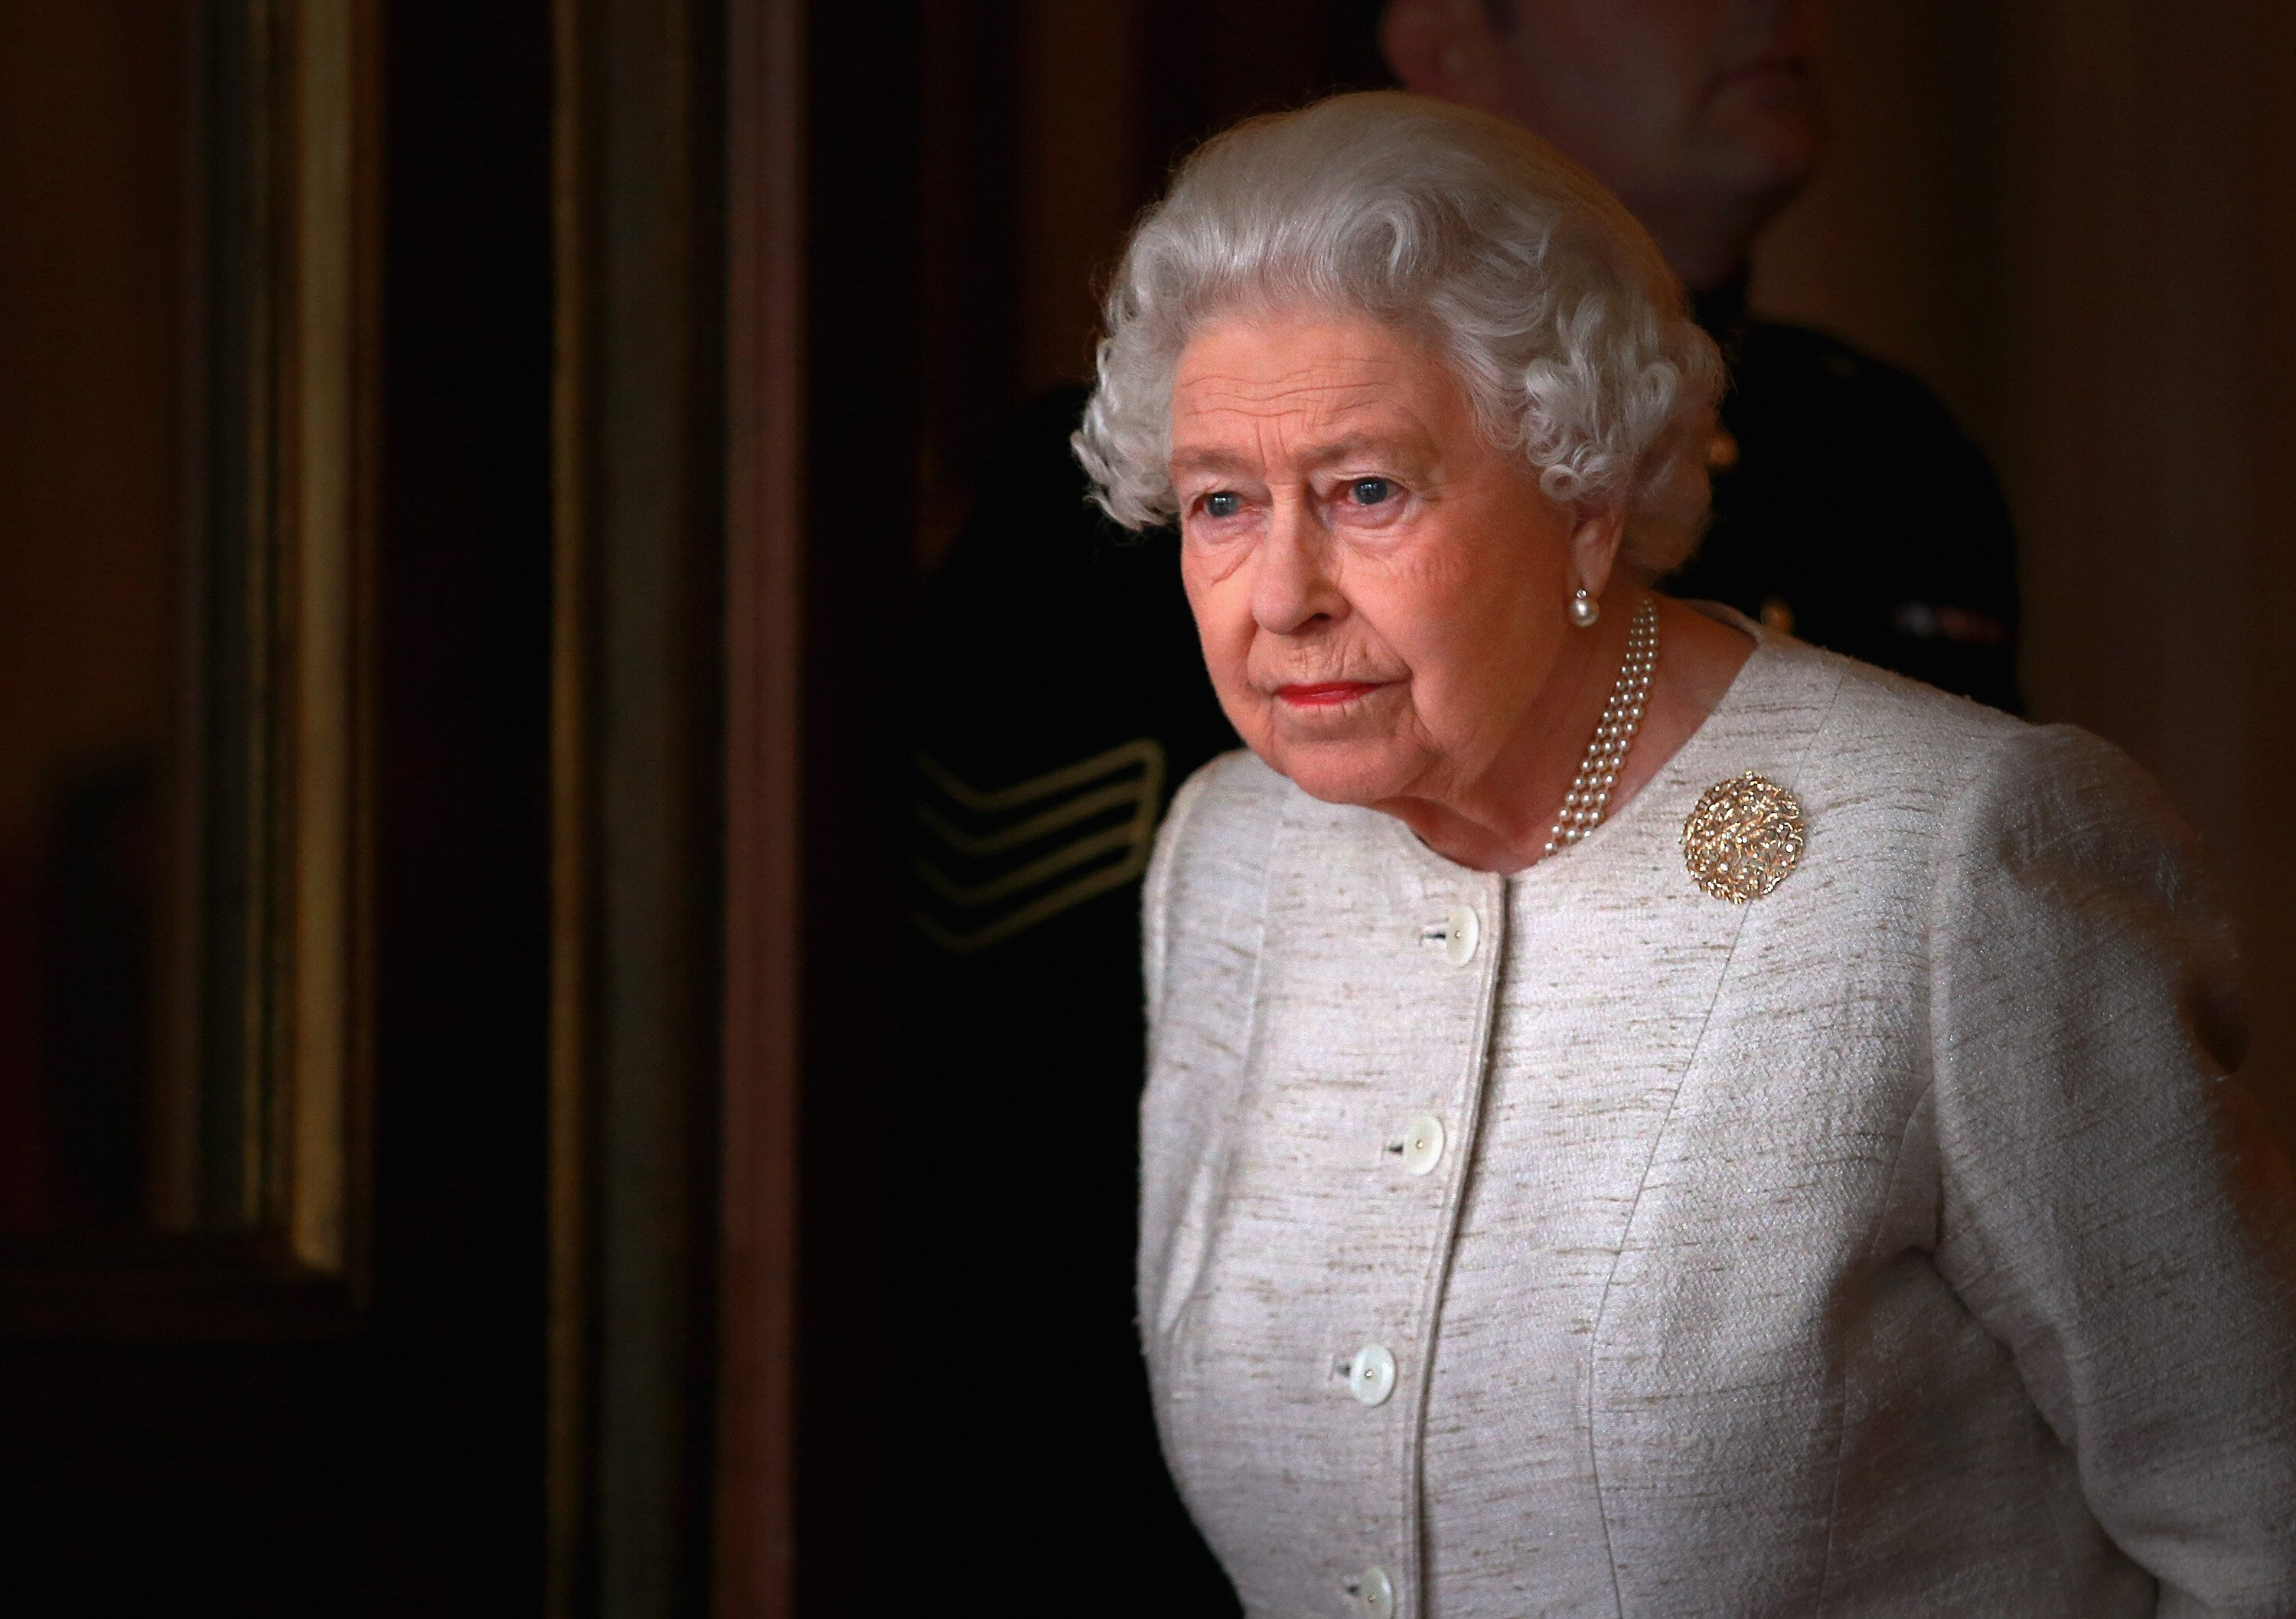 The British royal family has faced renewed reports of racism since early this year.